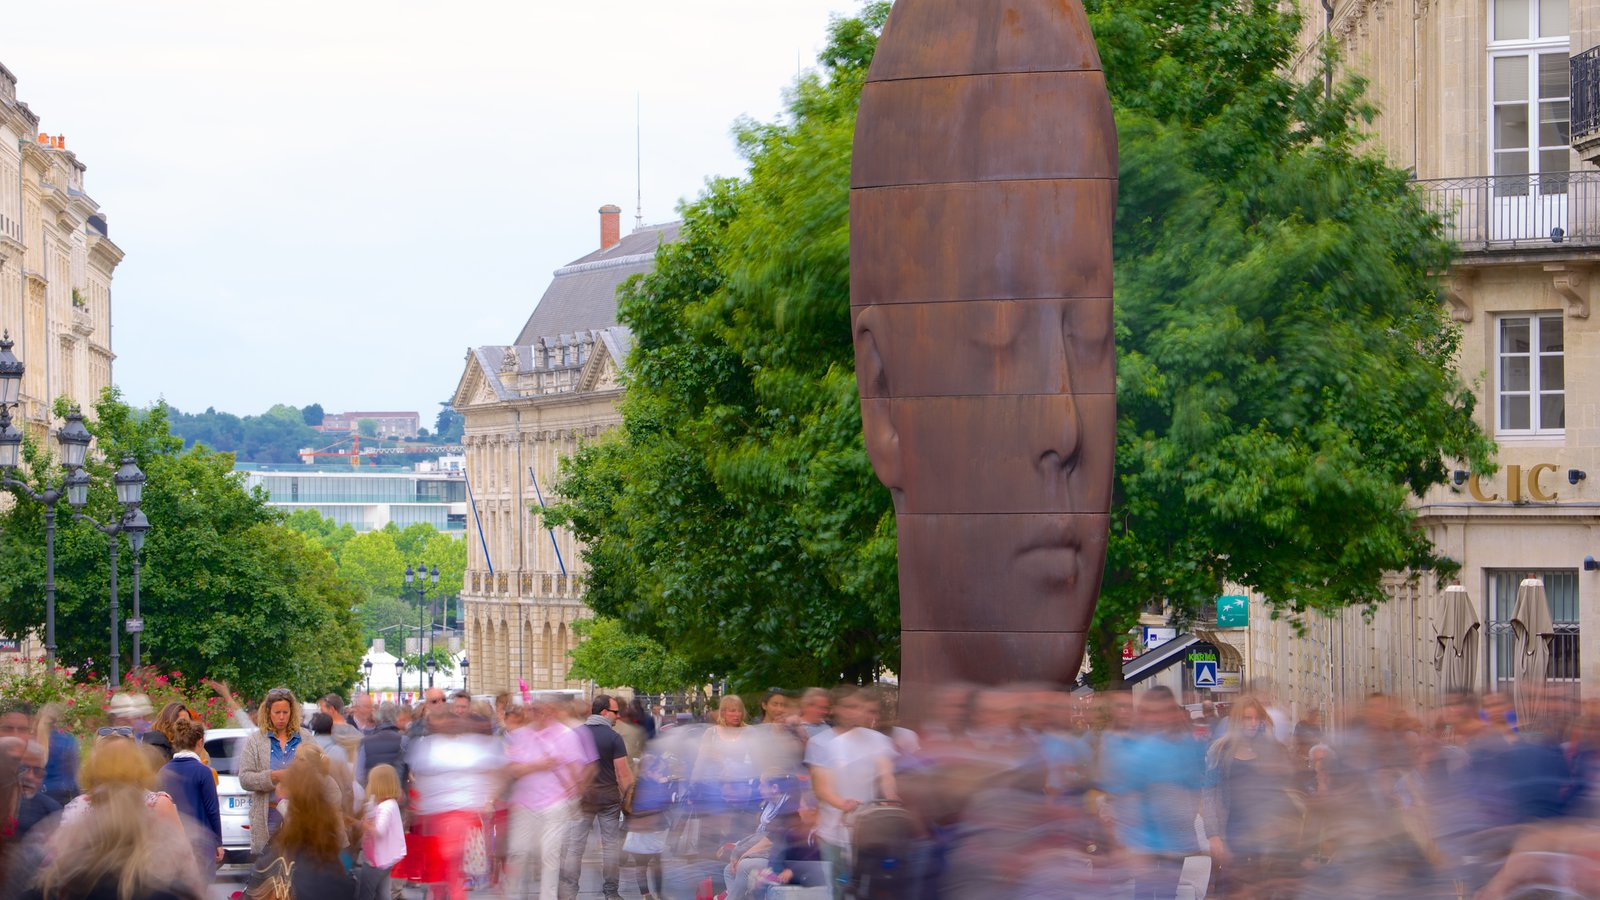 Bordeaux which includes outdoor art as well as a large group of people